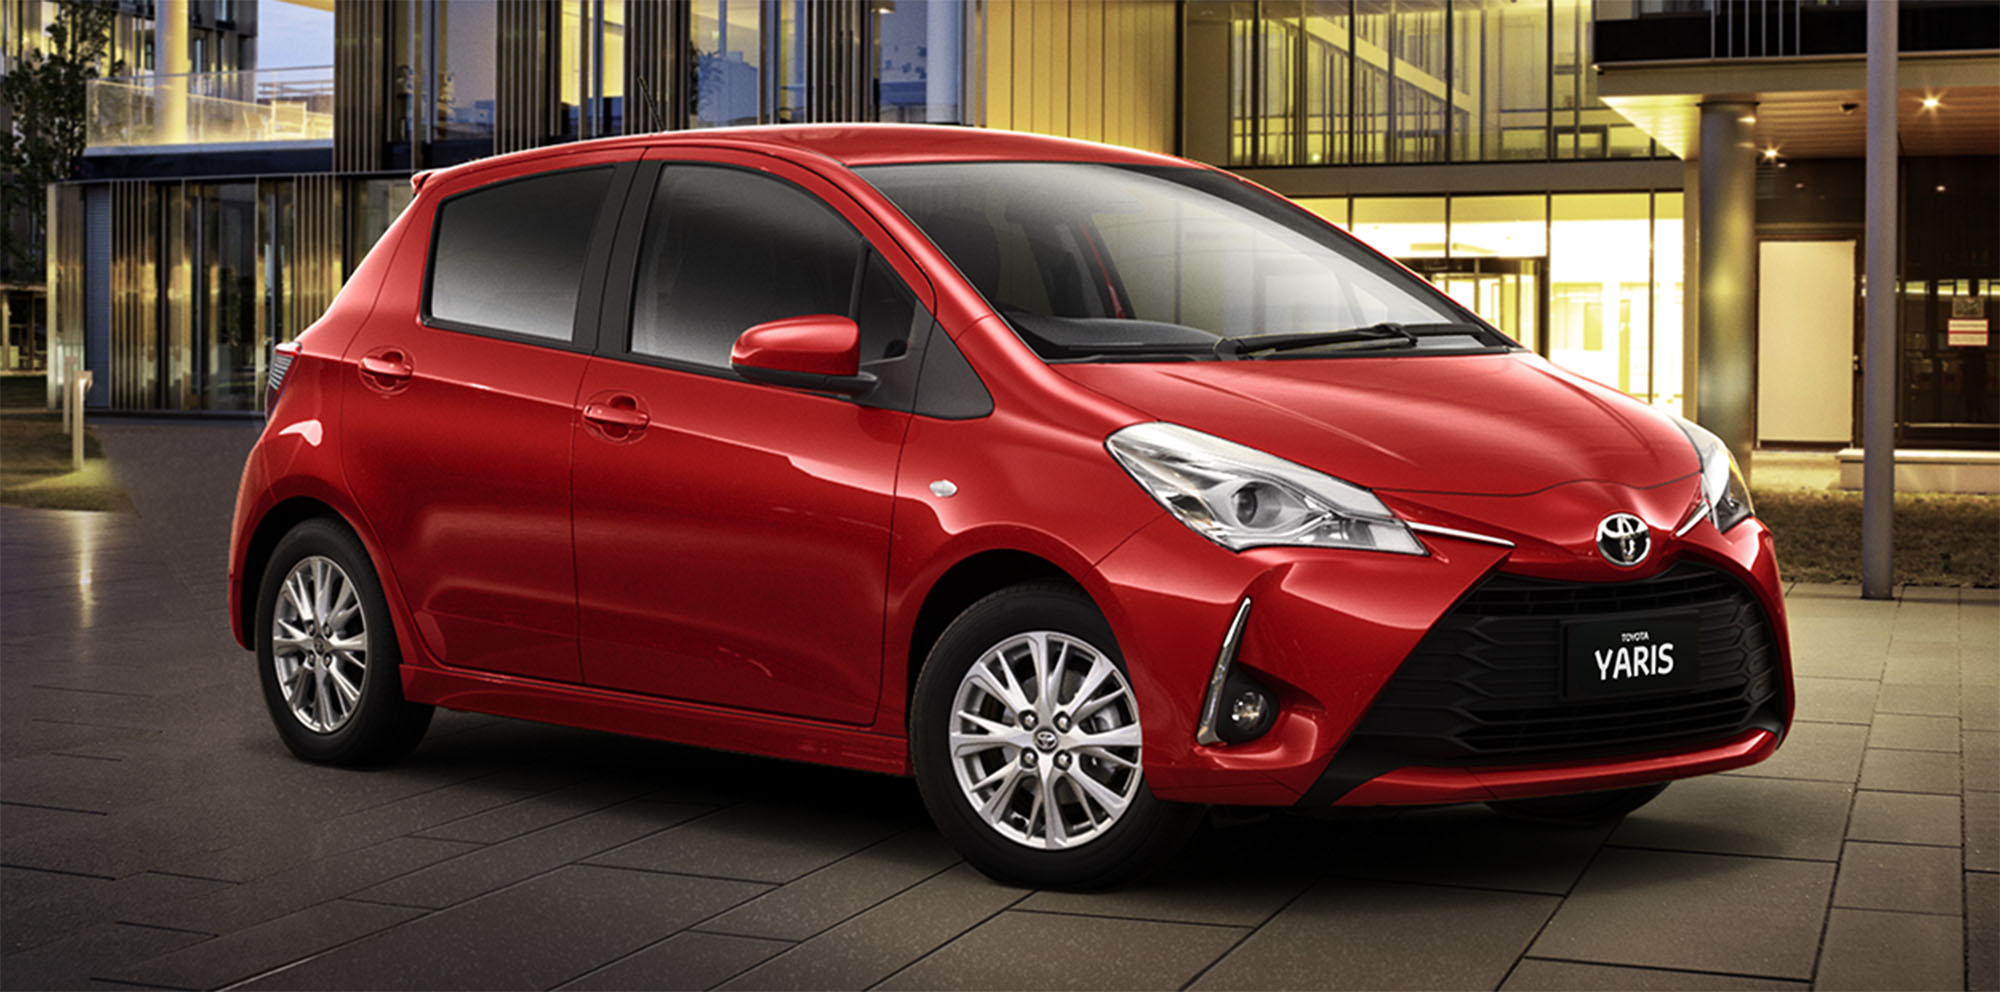 toyota yaris trd limited new agya 1.2 g a/t 2017 pricing and specs update photos 1 of 4